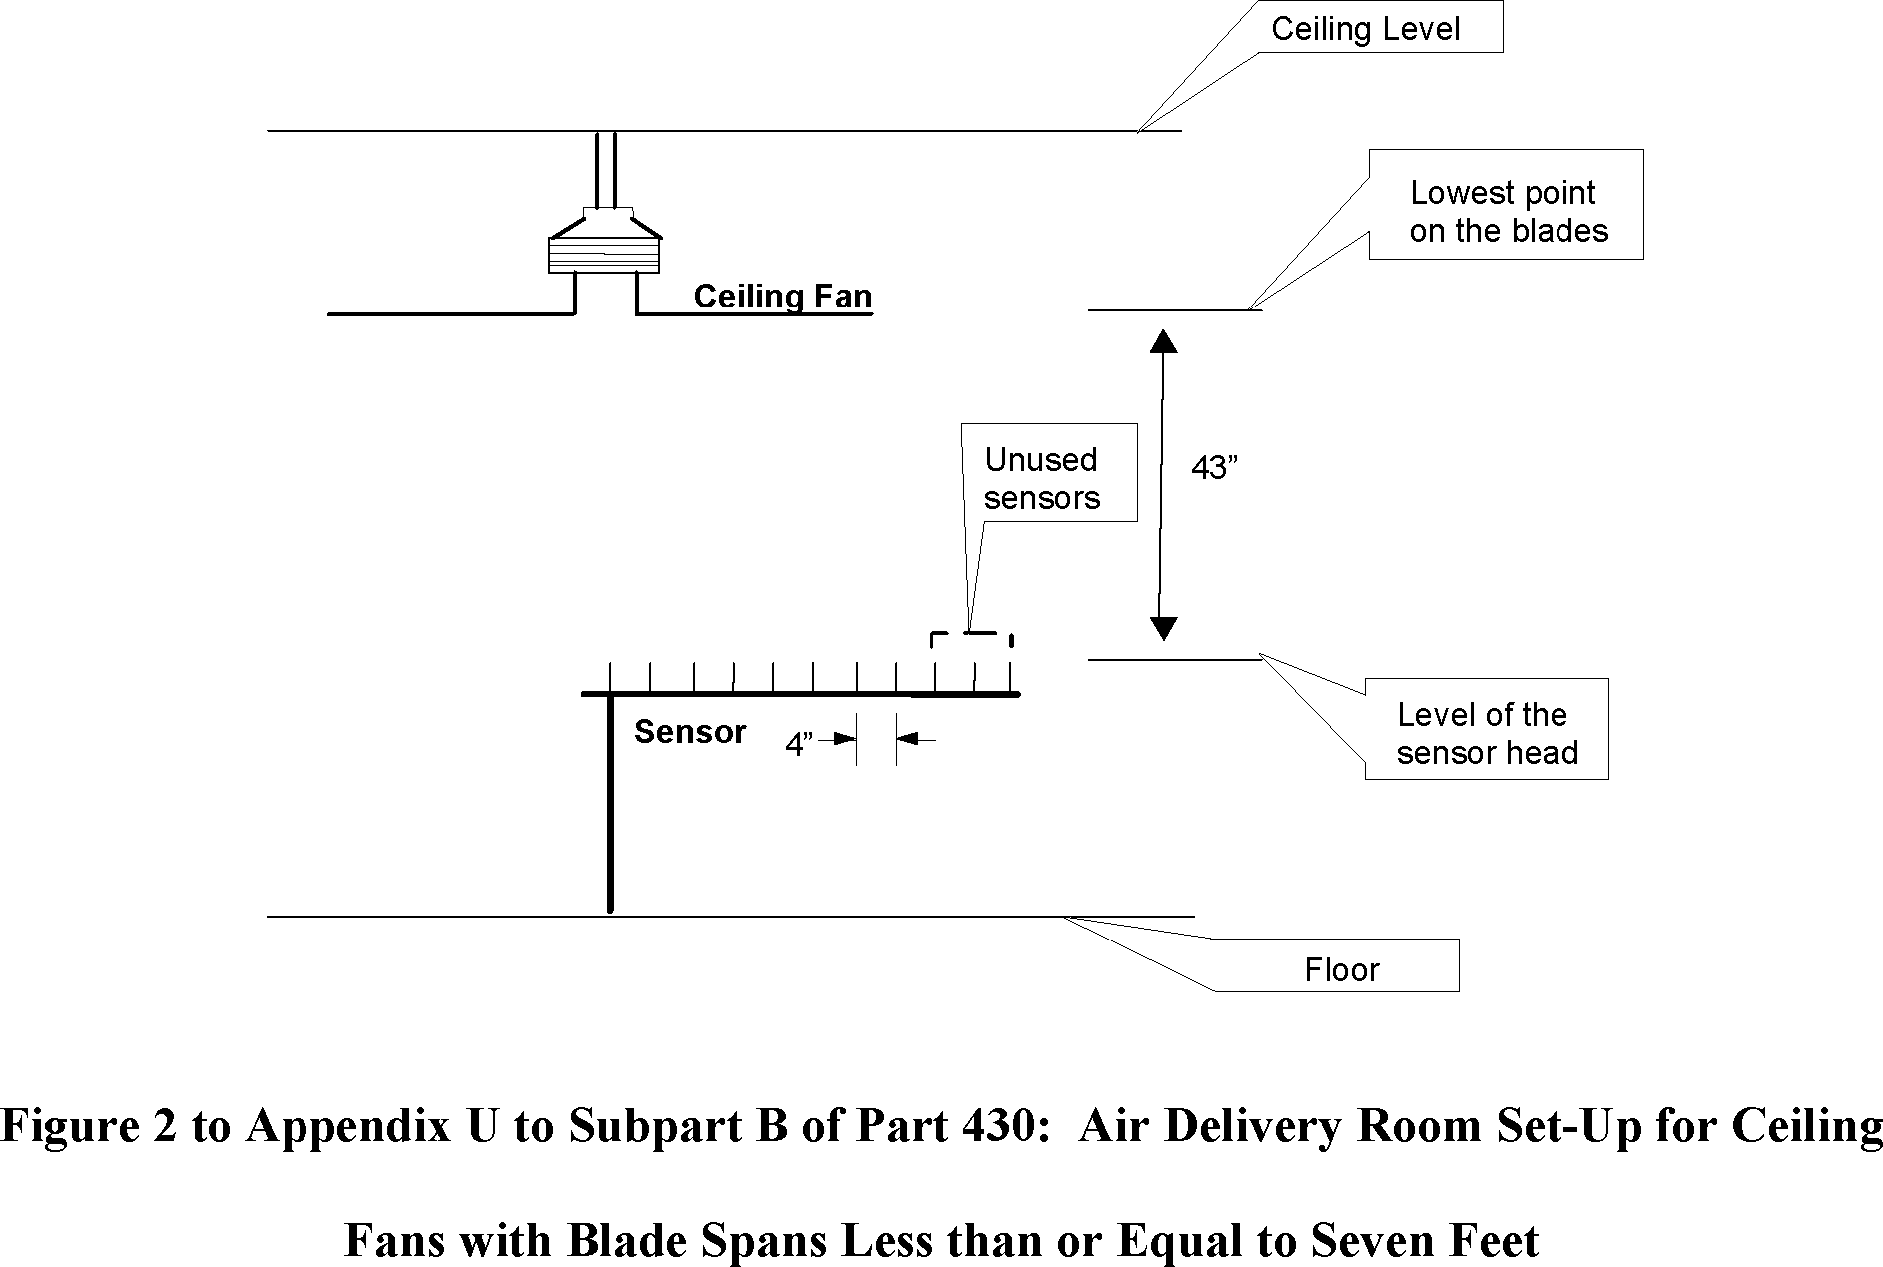 Federal Register Energy Conservation Program Test Procedures For Ceiling Fans